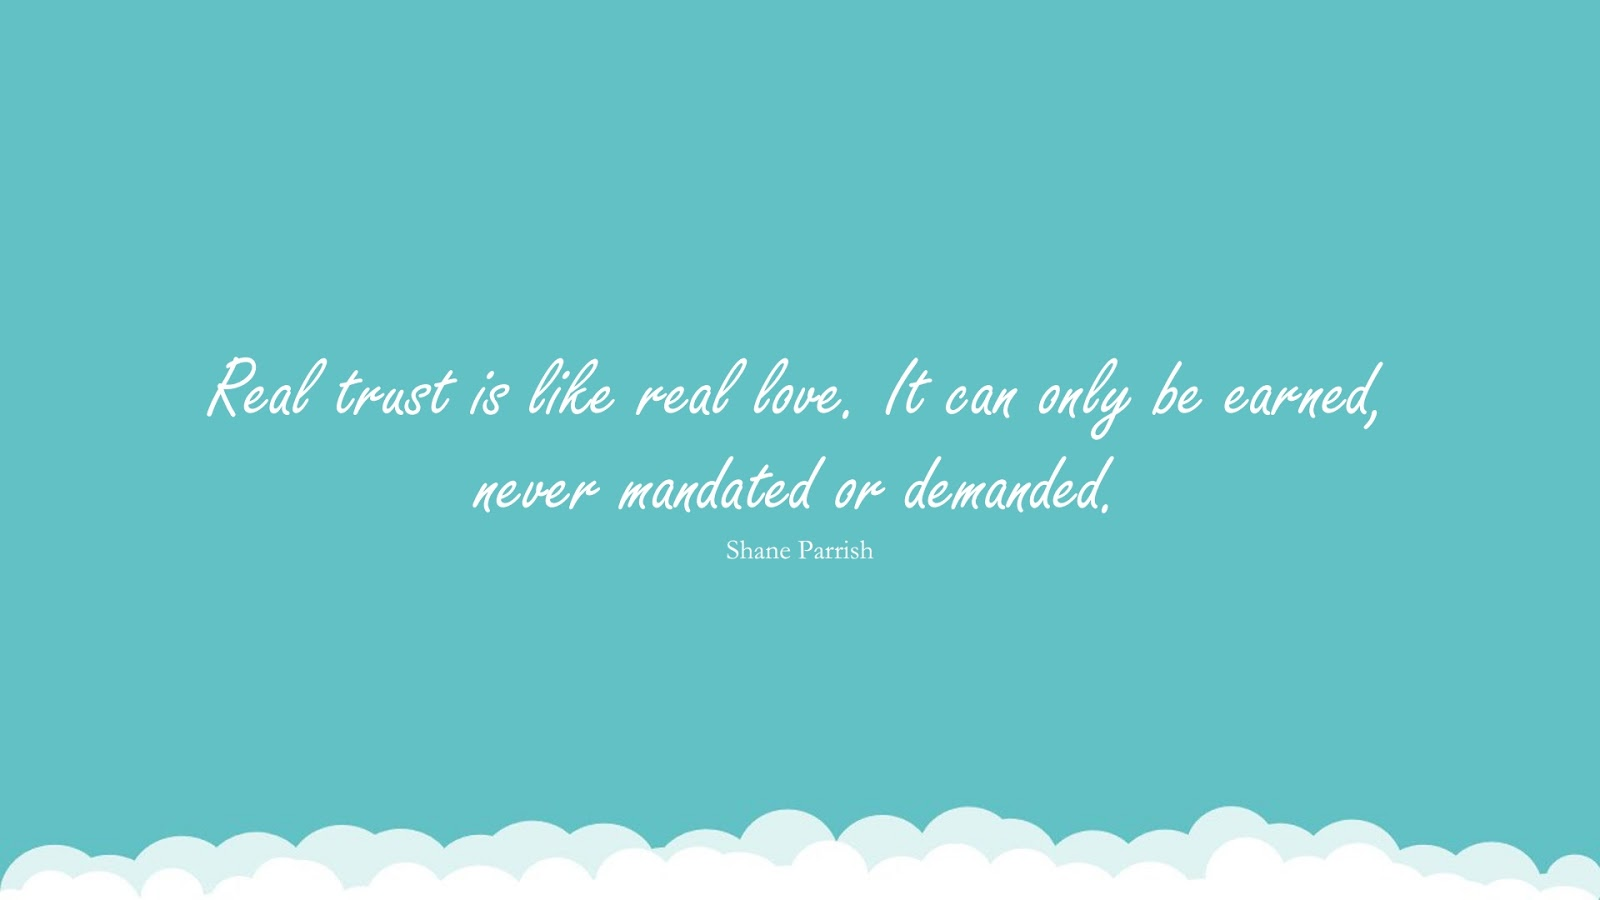 Real trust is like real love. It can only be earned, never mandated or demanded. (Shane Parrish);  #RelationshipQuotes